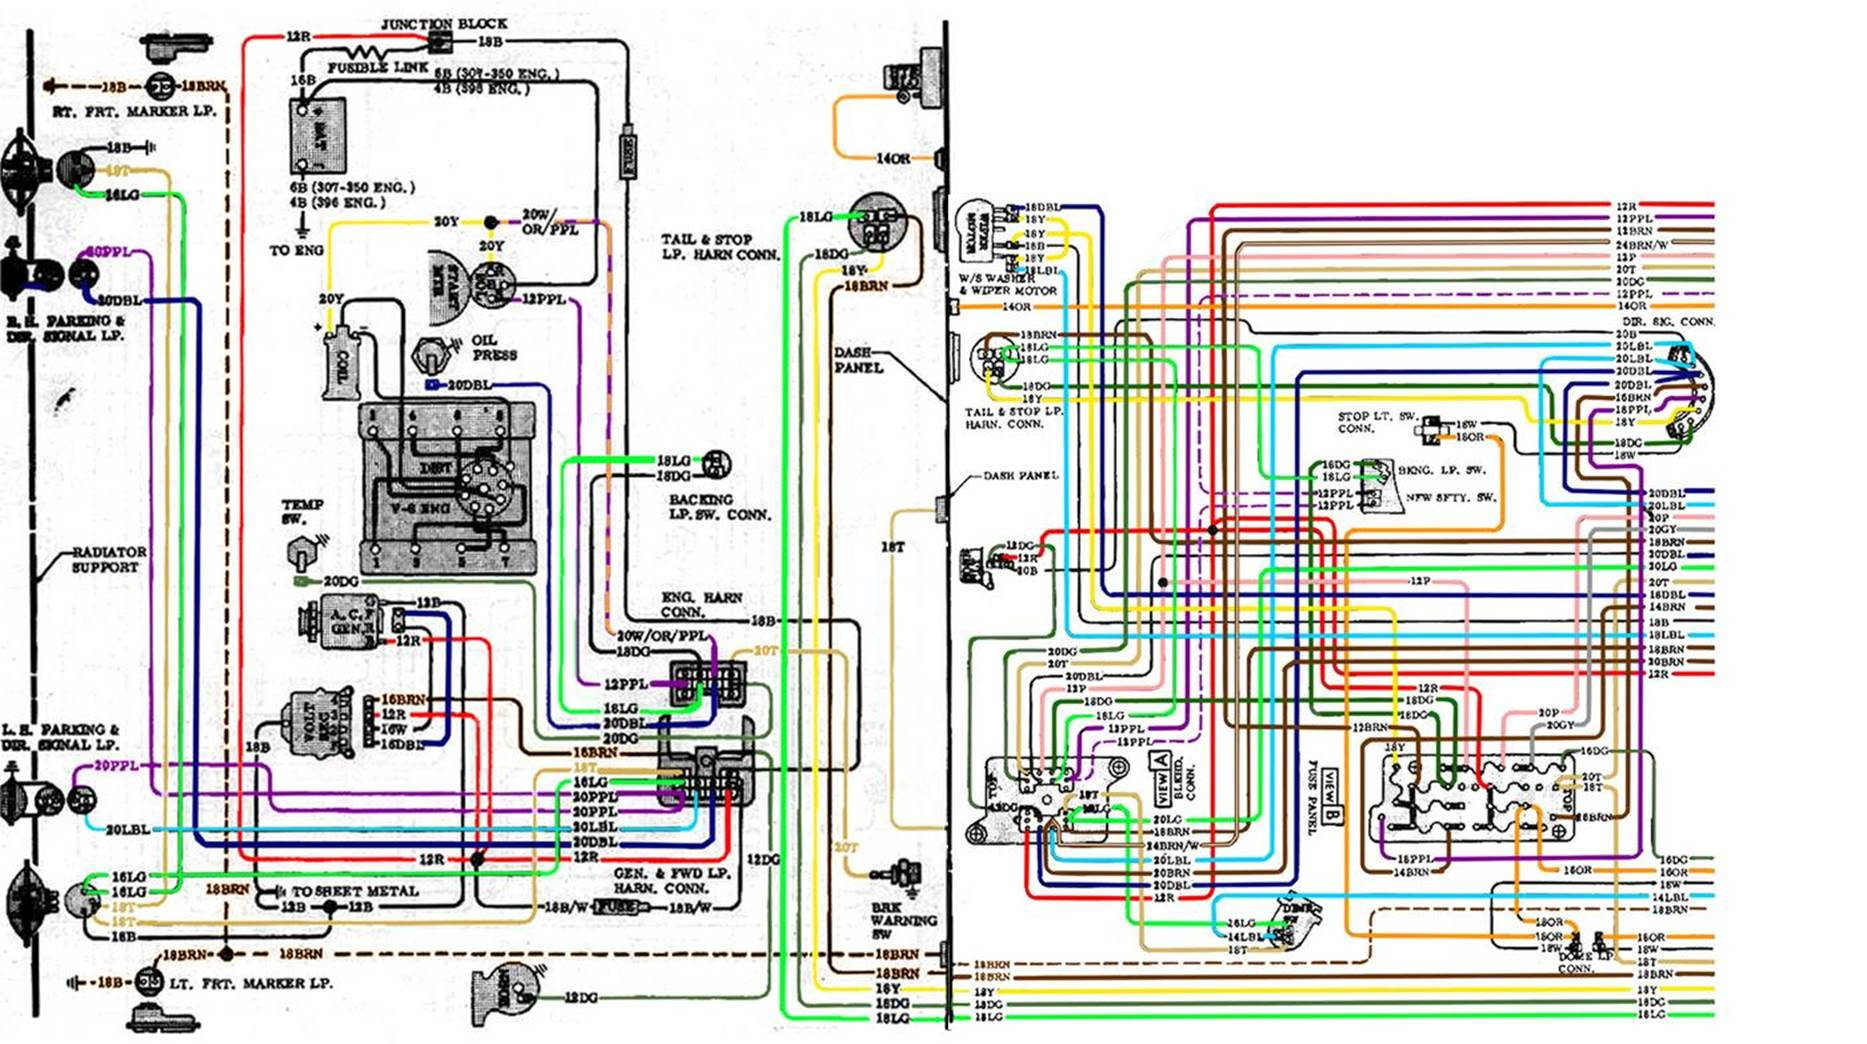 image002 67 72 chevy wiring diagram wiring diagram for 1972 chevy truck at crackthecode.co